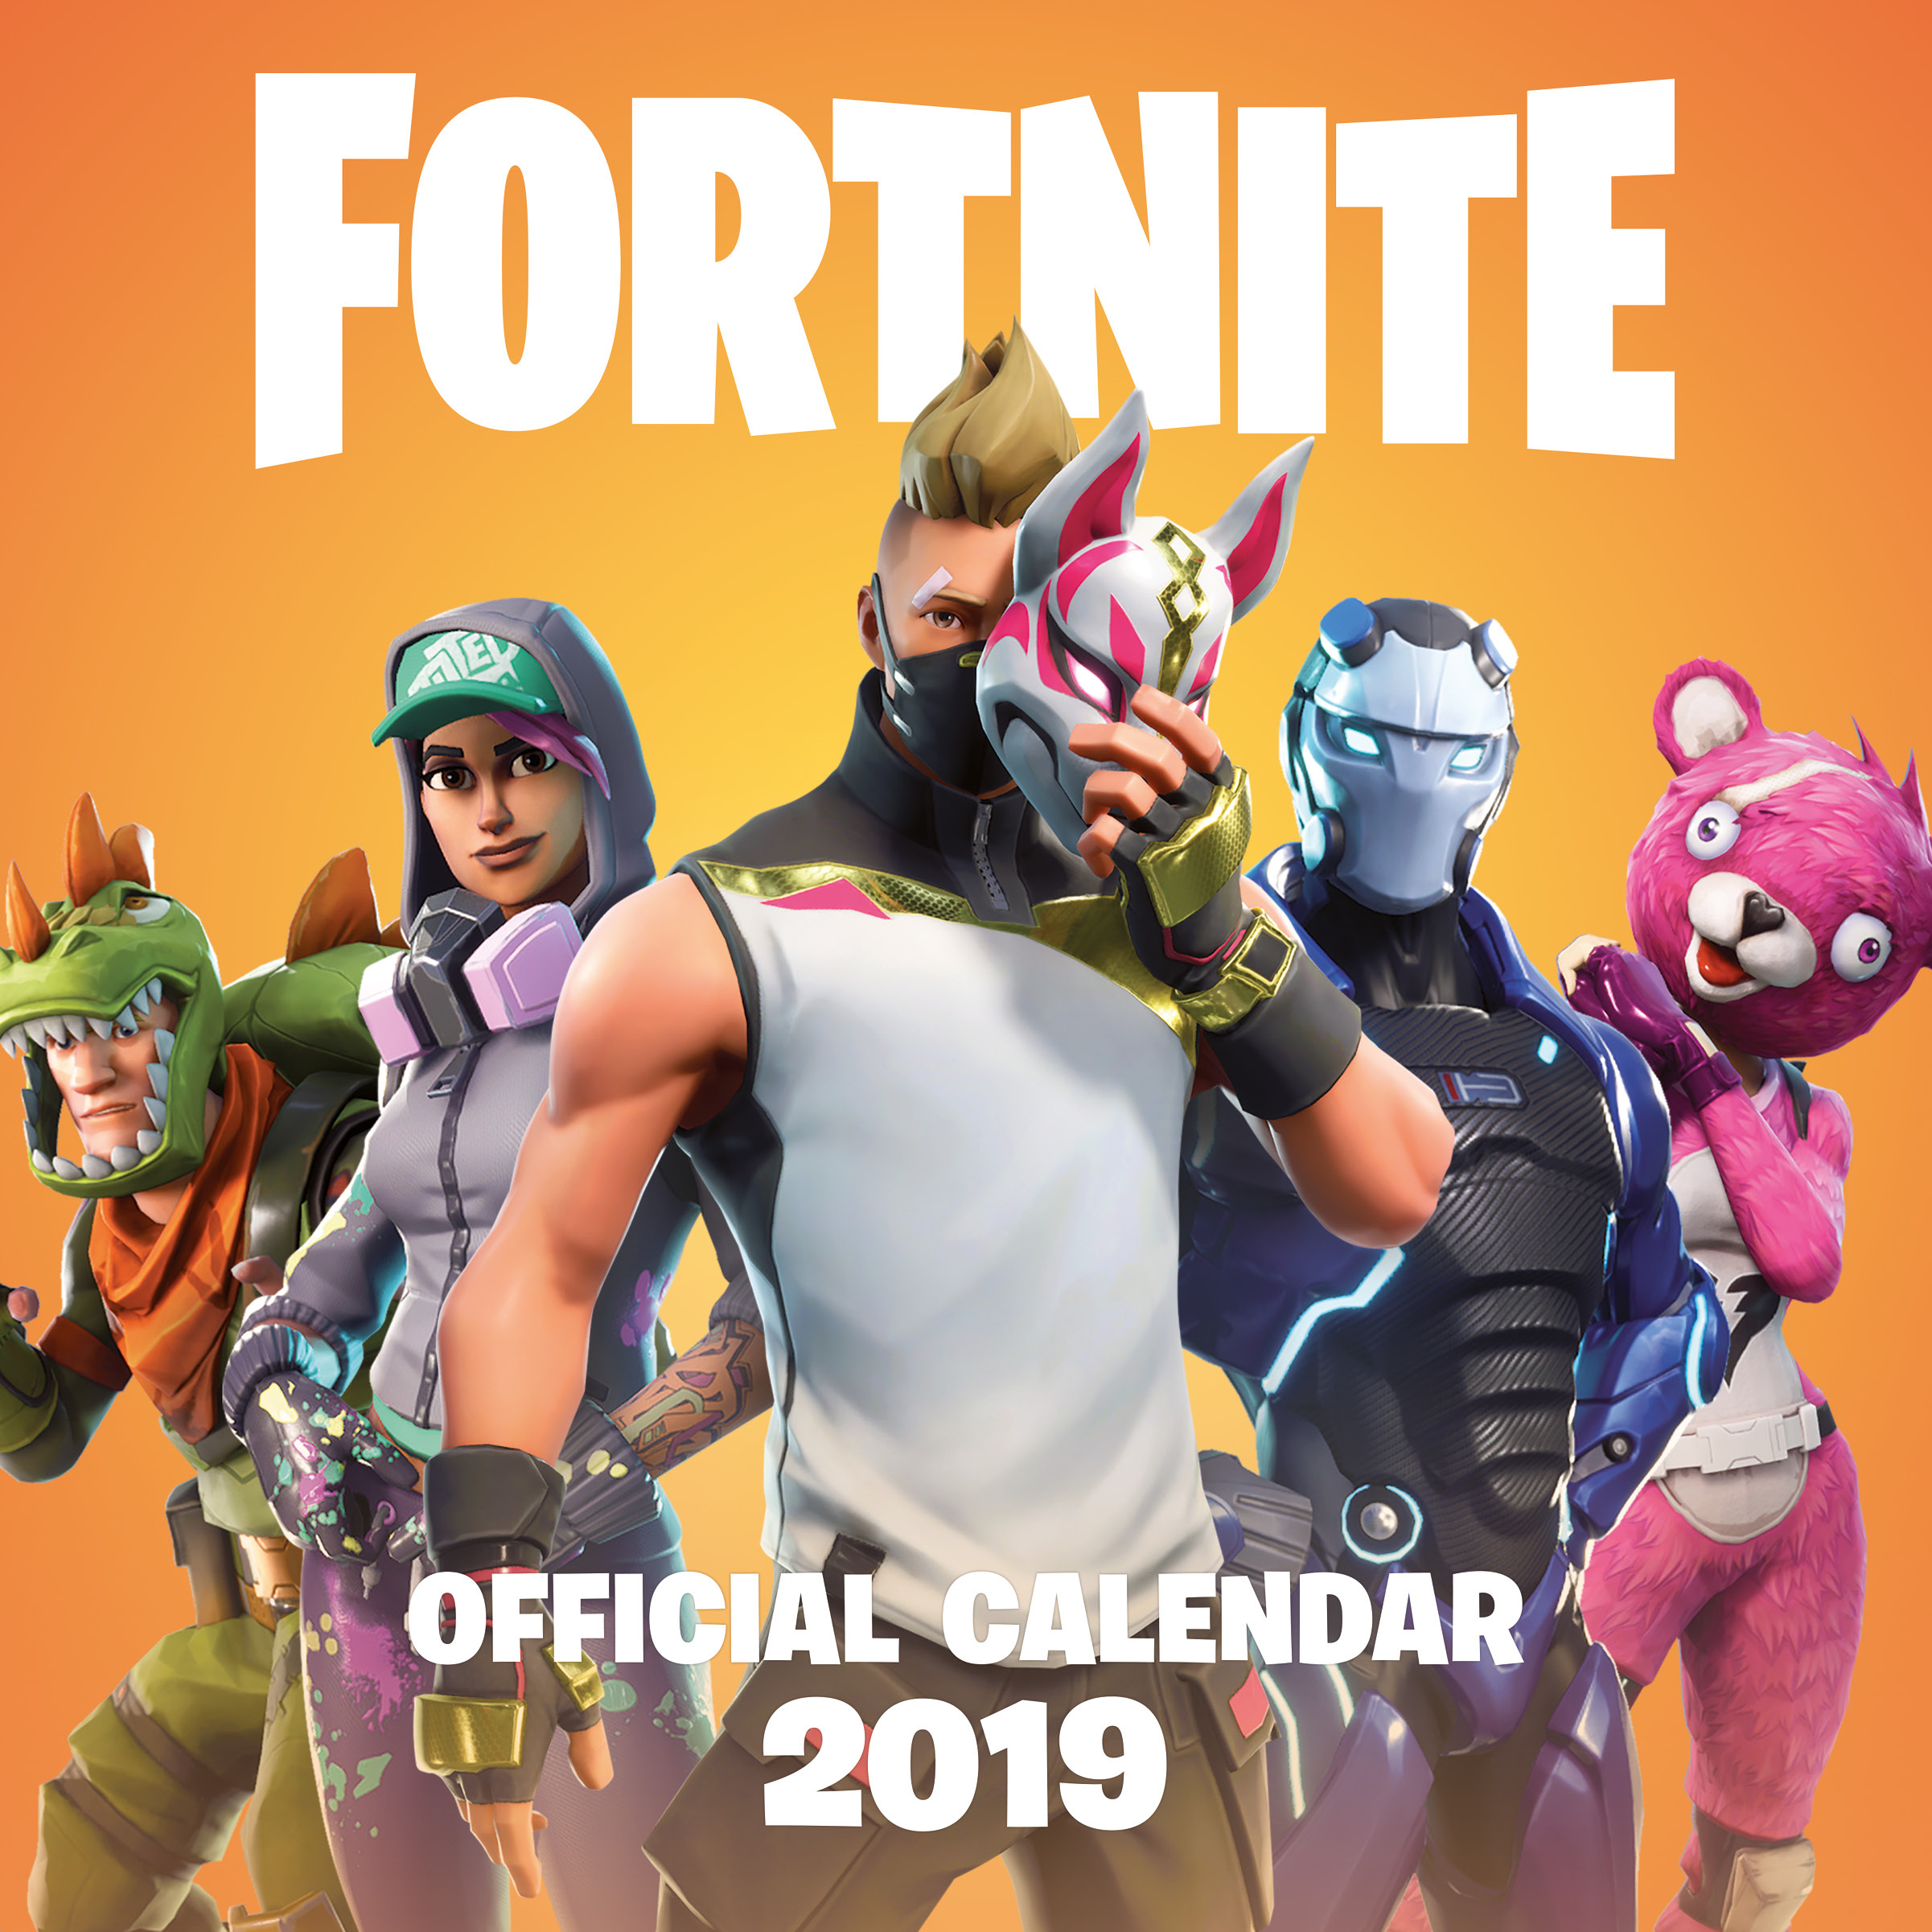 FORTNITE (OFFICIAL): 2019 Calendar by Epic Games, ISBN: 9781472262172